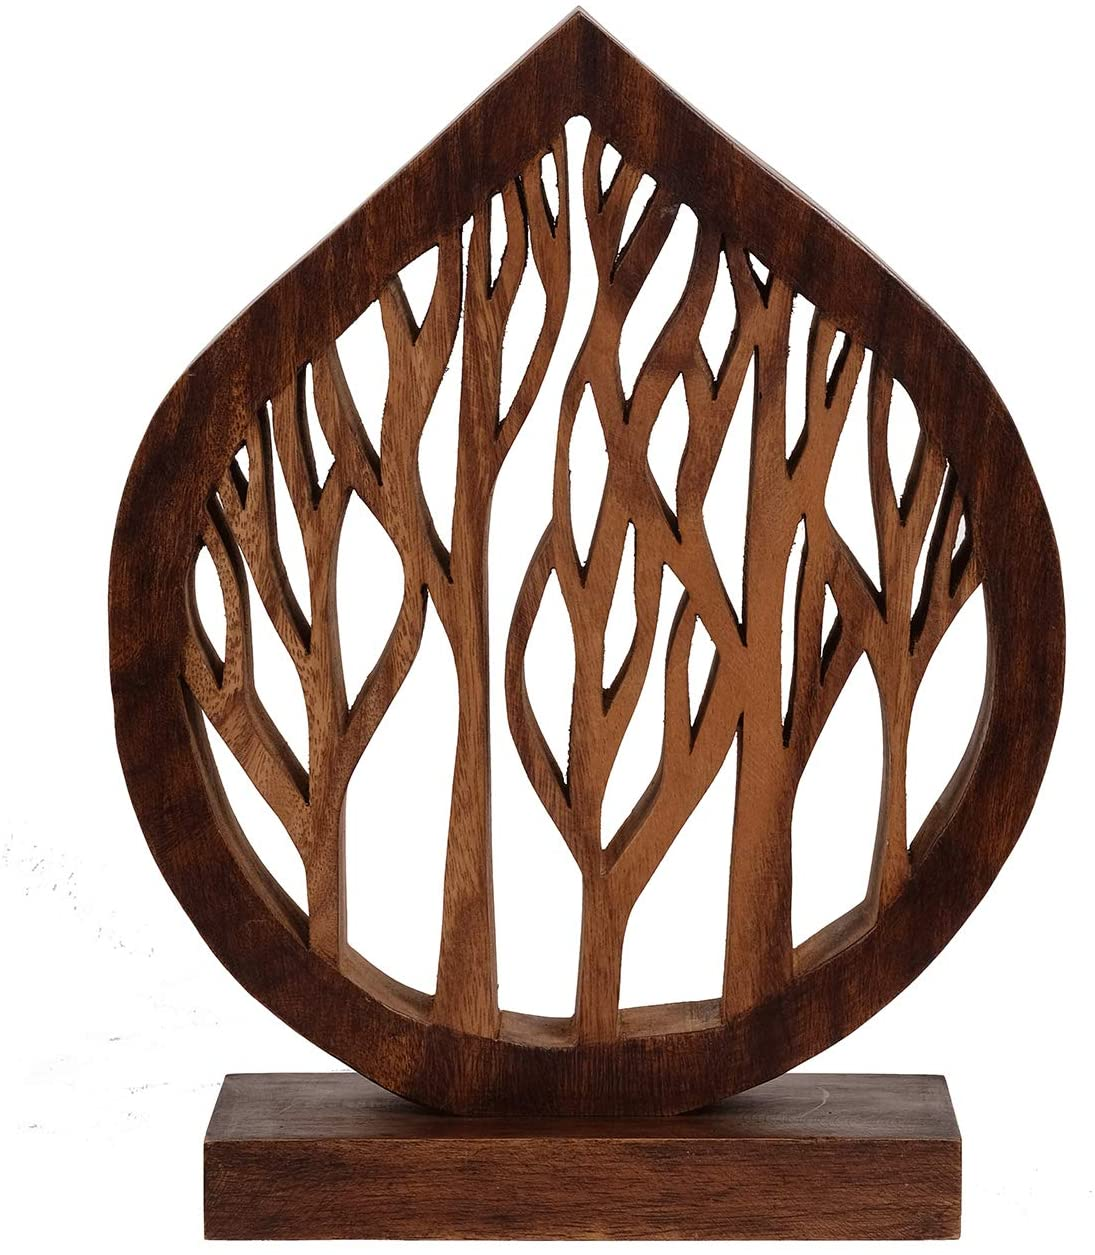 Decozen Handmade Wooden Decor Sculpture Made from Solid Wood for Shelves, Console Table Decor Centerpiece Ideal for Living Room, Family Room, Guest Room, Study Dorm Room